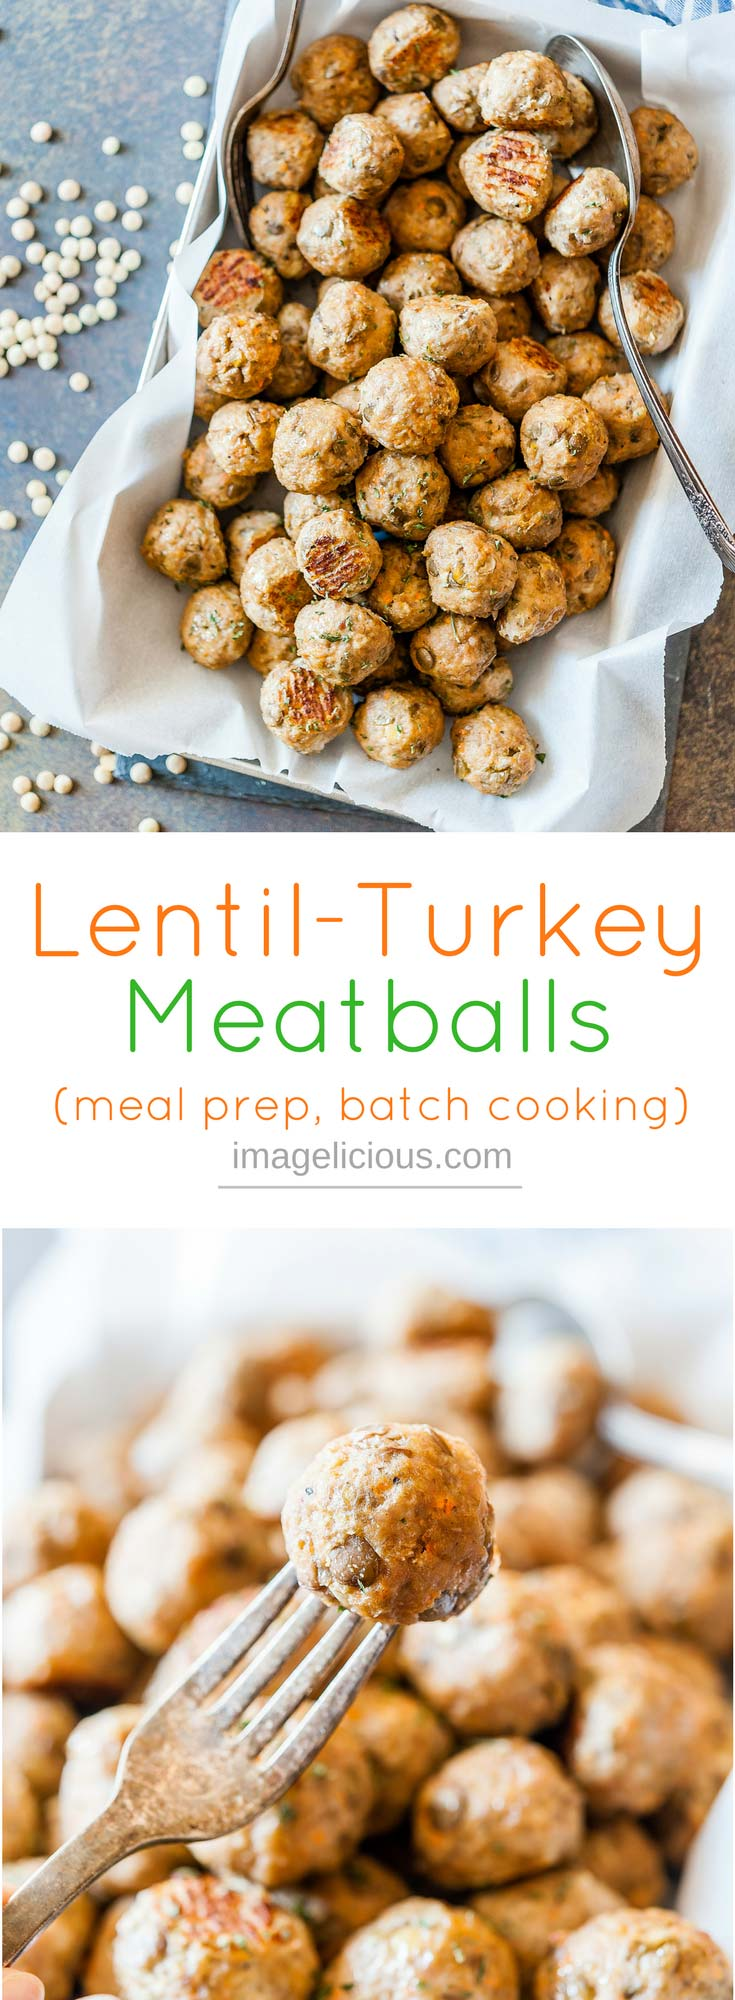 Lentil-Turkey Meatballs are delicious, healthy, and filling. They are perfect to eat on their own or to add to pasta, sandwiches, or soups. Full of fiber, protein, and vegetables, they will keep you satisfied for hours. Bake them in the oven and use throughout the week. Great for meal prep or batch cooking and freezing | imagelicious.com #sponsored #GetPrepped #Lentils #Meatballs #MealPrep #BatchCooking